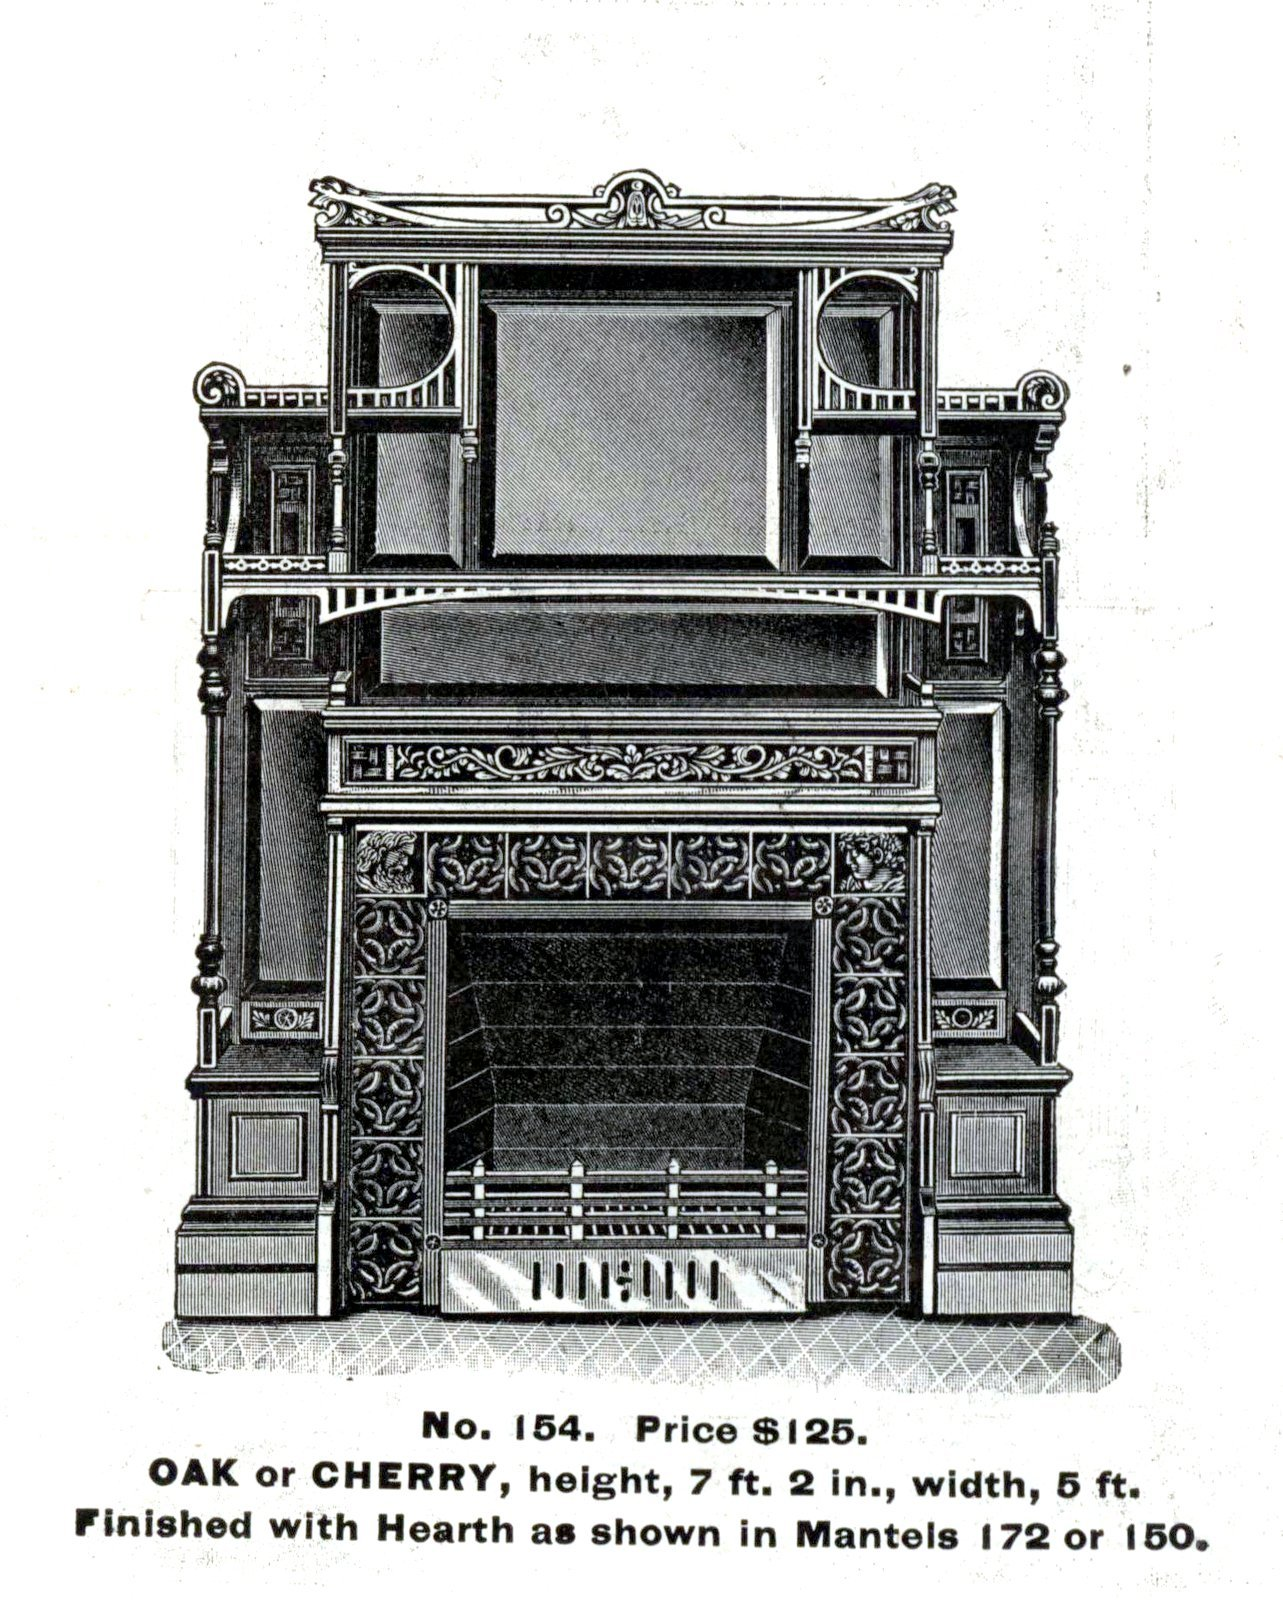 Antique Victorian fireplace surrounds by Morley Bros - 1880s (4)